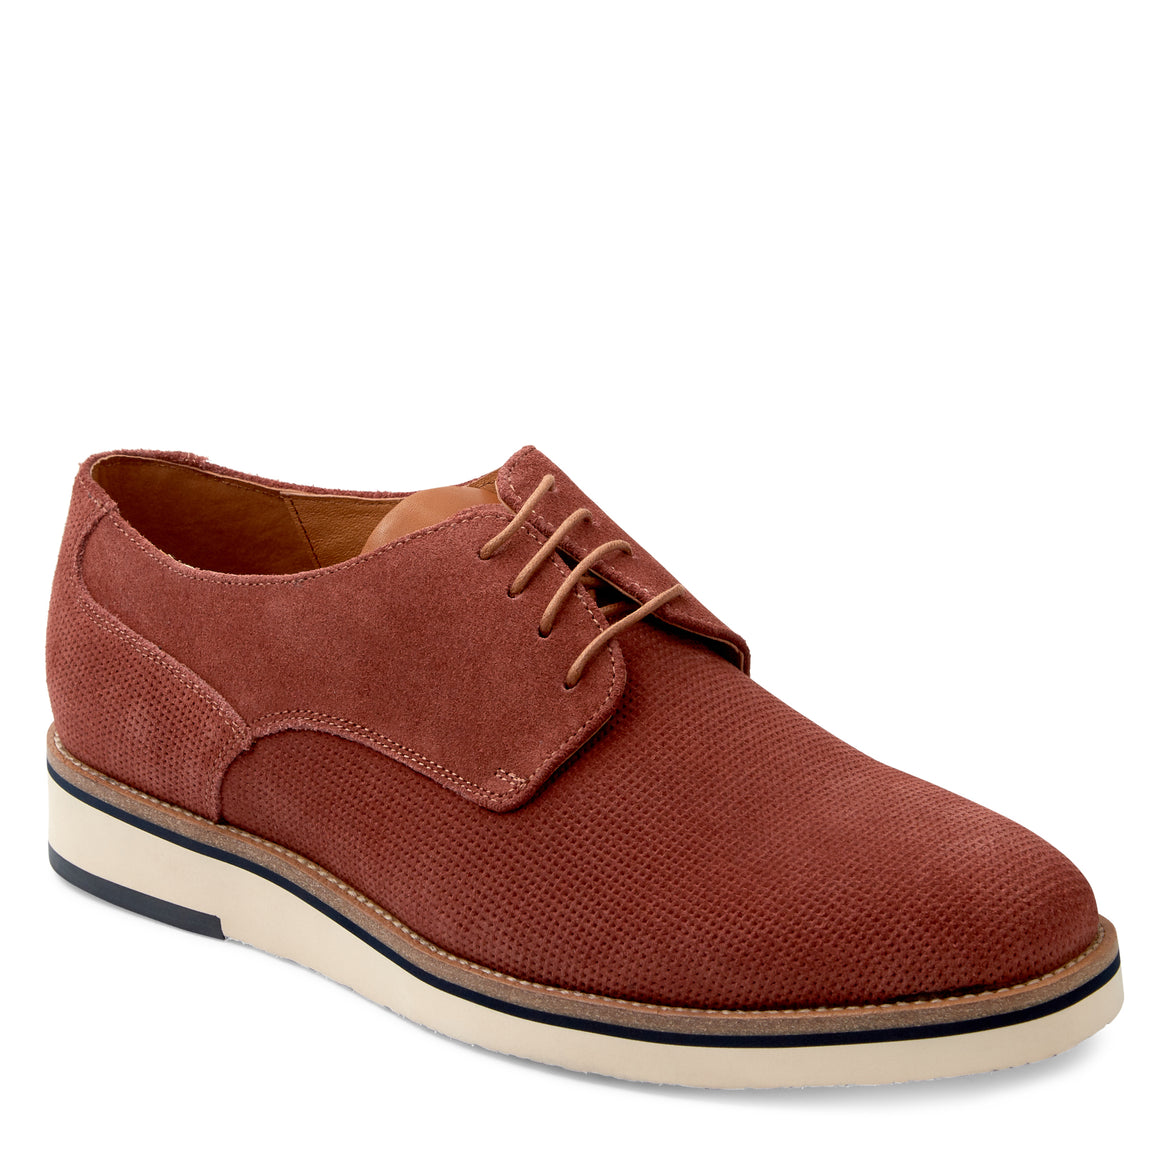 Aaron Coral Derby Shoes